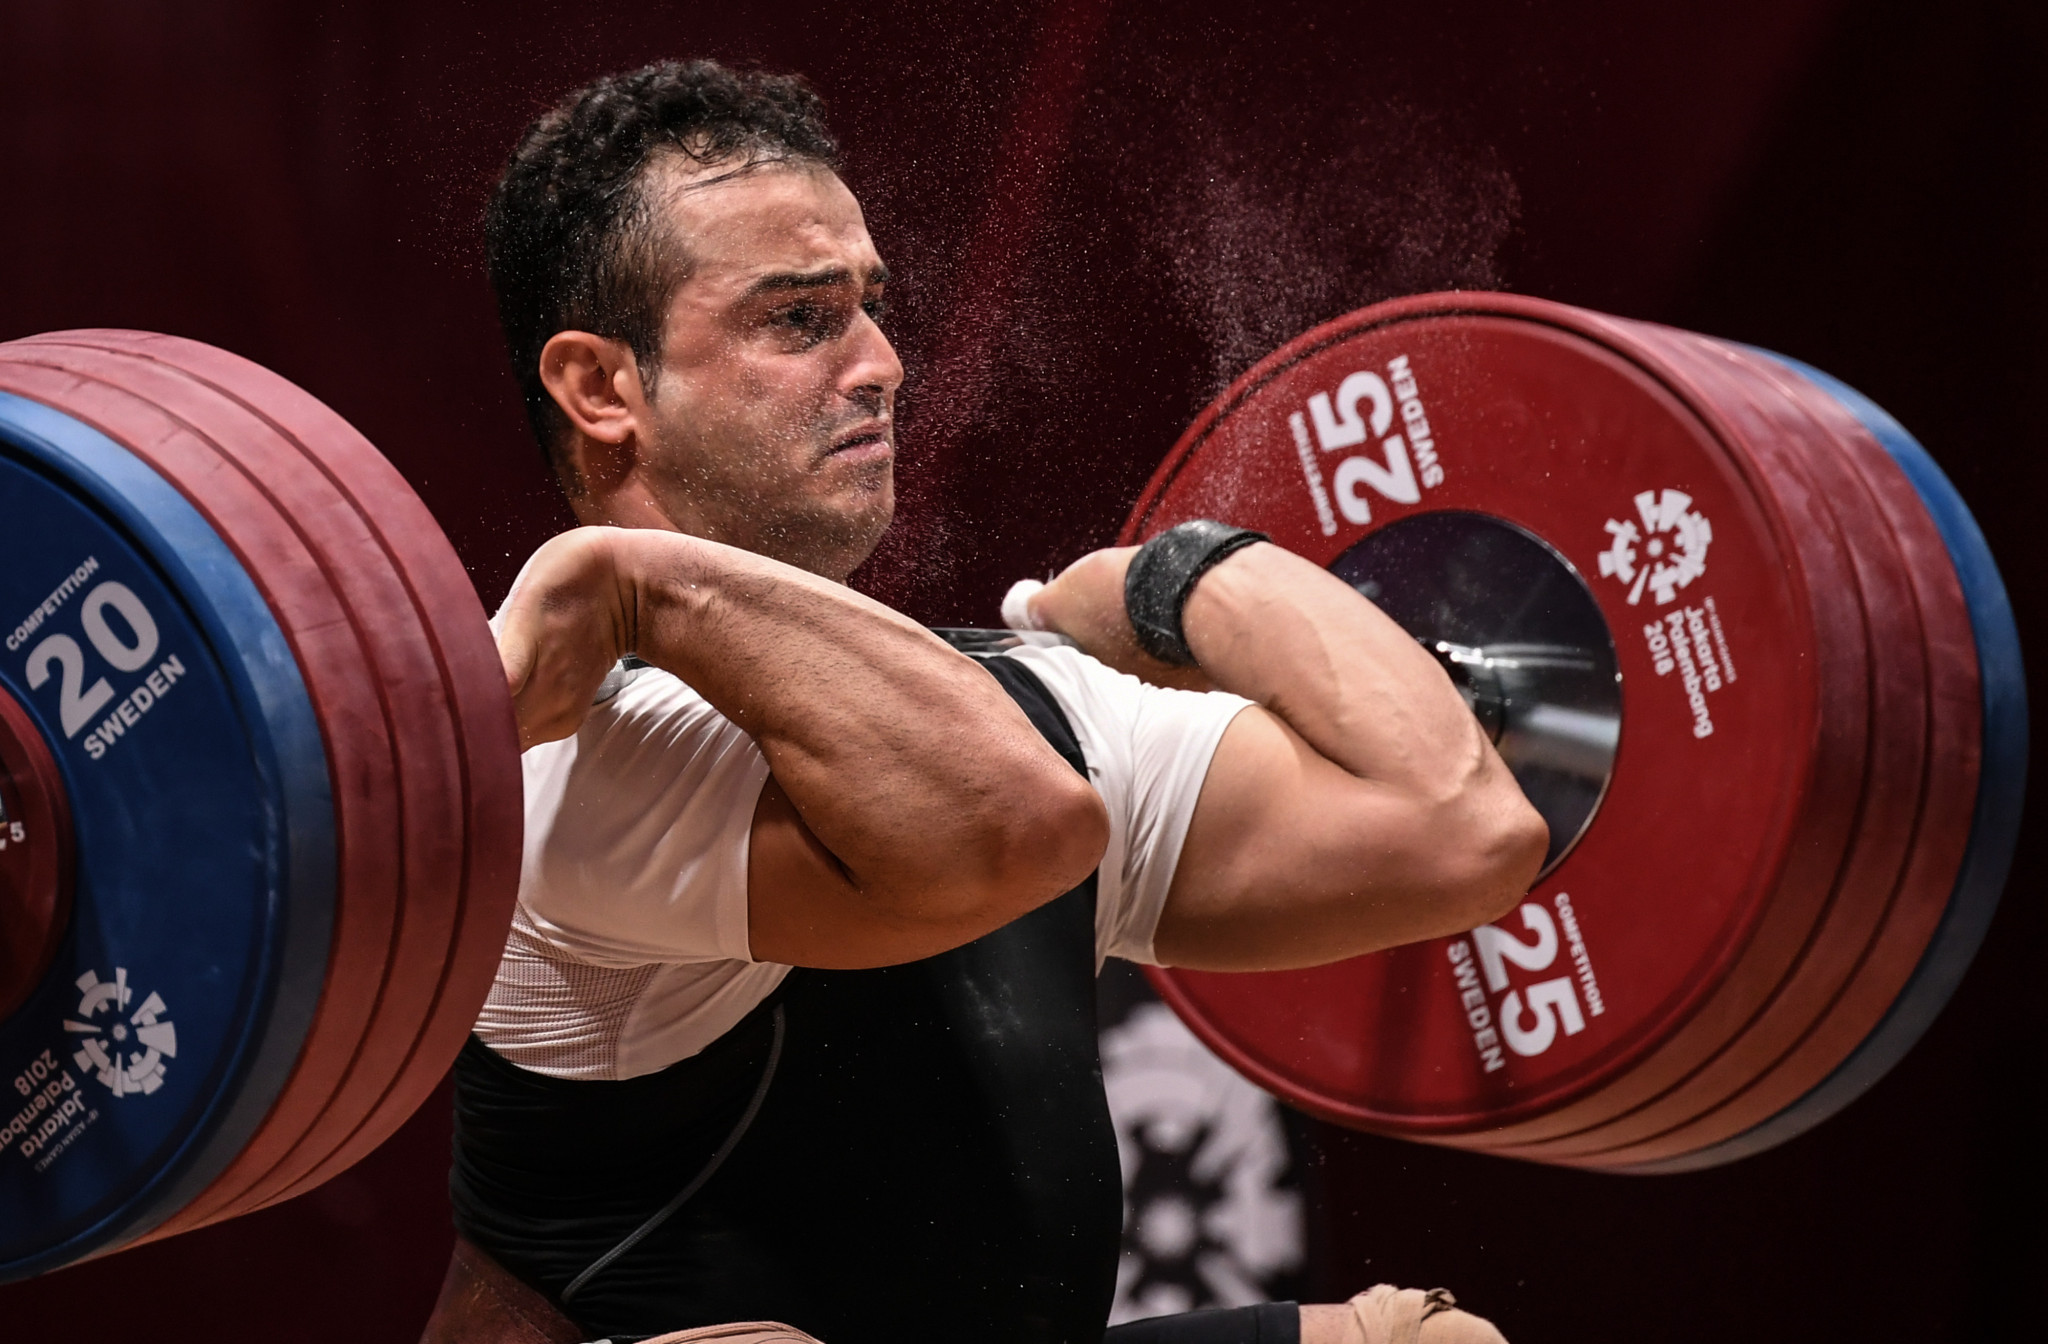 Iran's top weightlifter Sohrab Moradi likely to miss Tokyo 2020 after spinal surgery